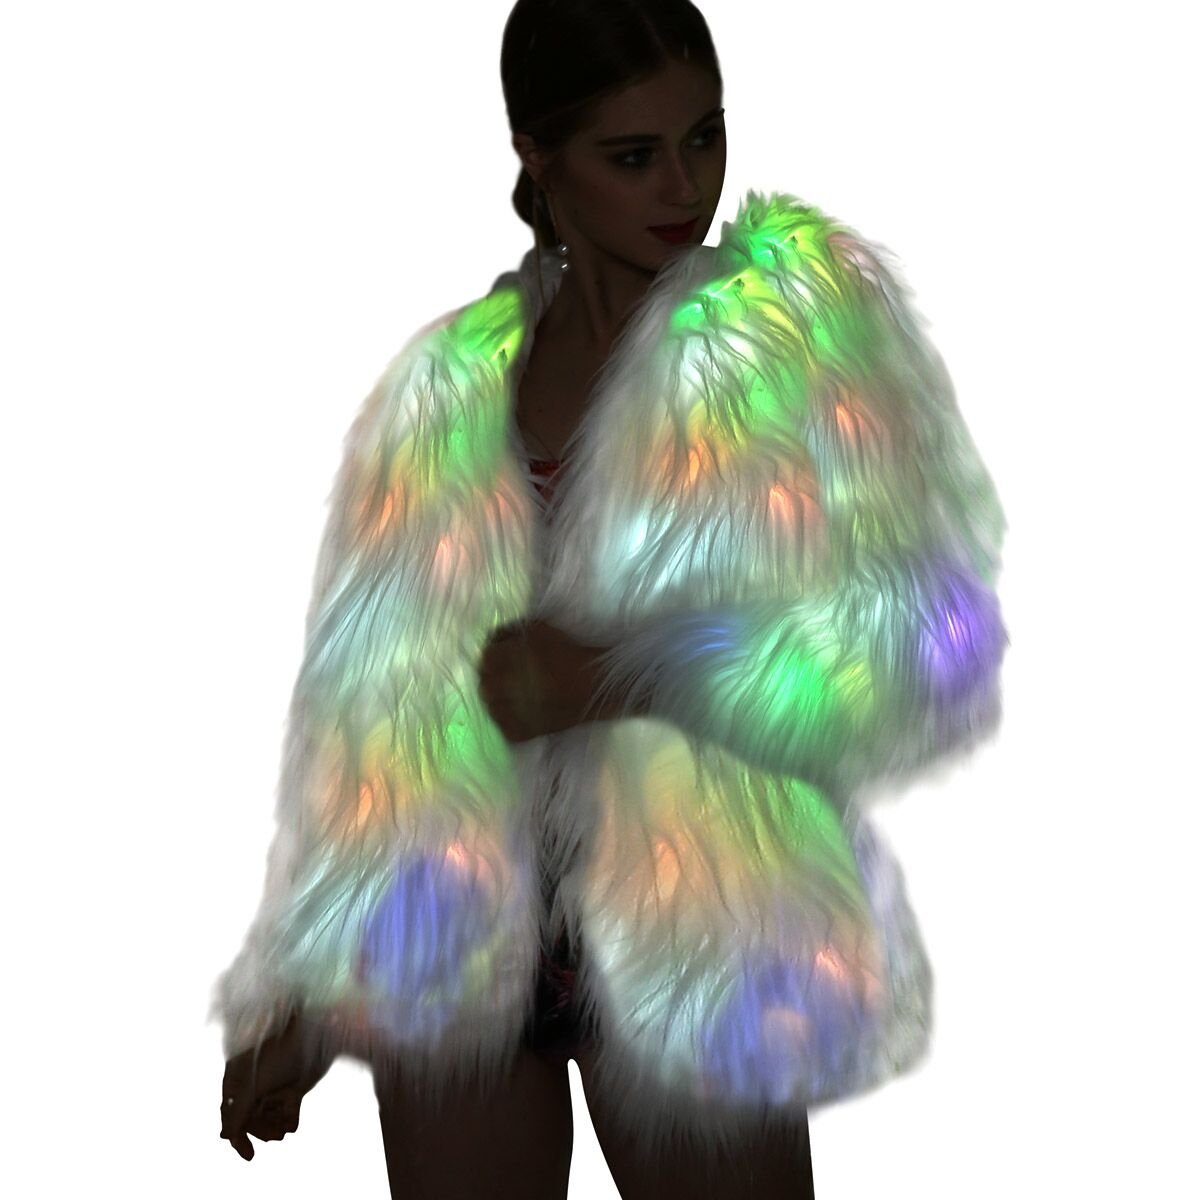 SZTOPFOCUS Women Vintage Winter Outwear Warm Light up Burning Glow Fluffy Faux Fur Coat Sparking Rainbow LED Costume Jacket (White, S)